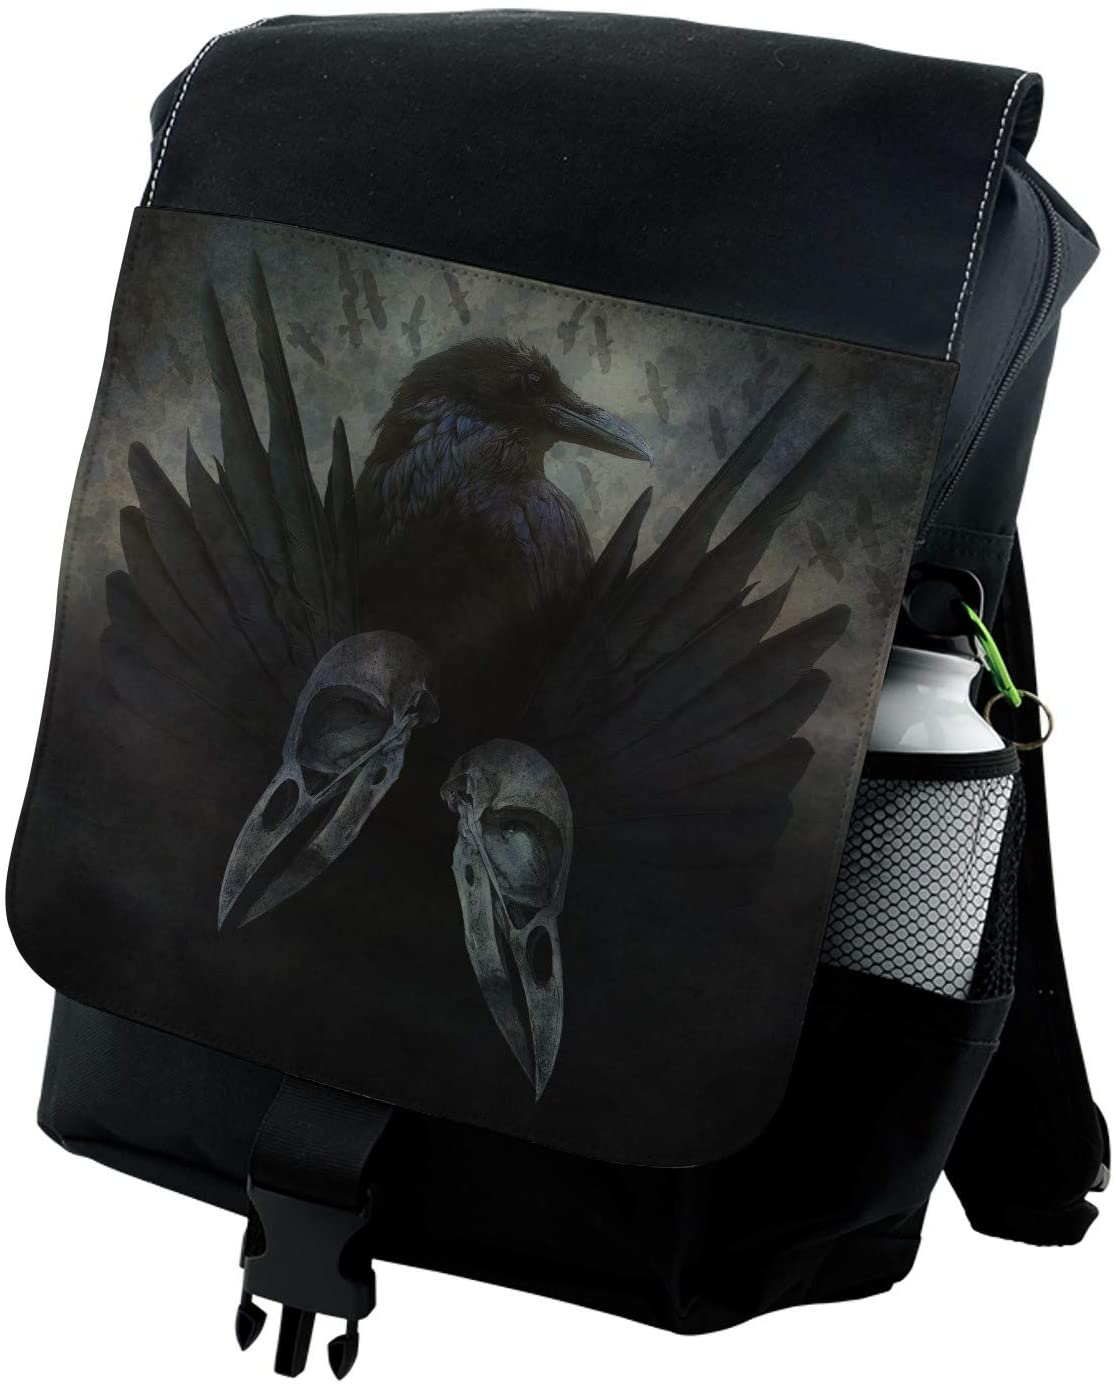 Lunarable Gothic Backpack, Mystic Crow Spirit Wings, Durable All-Purpose Bag